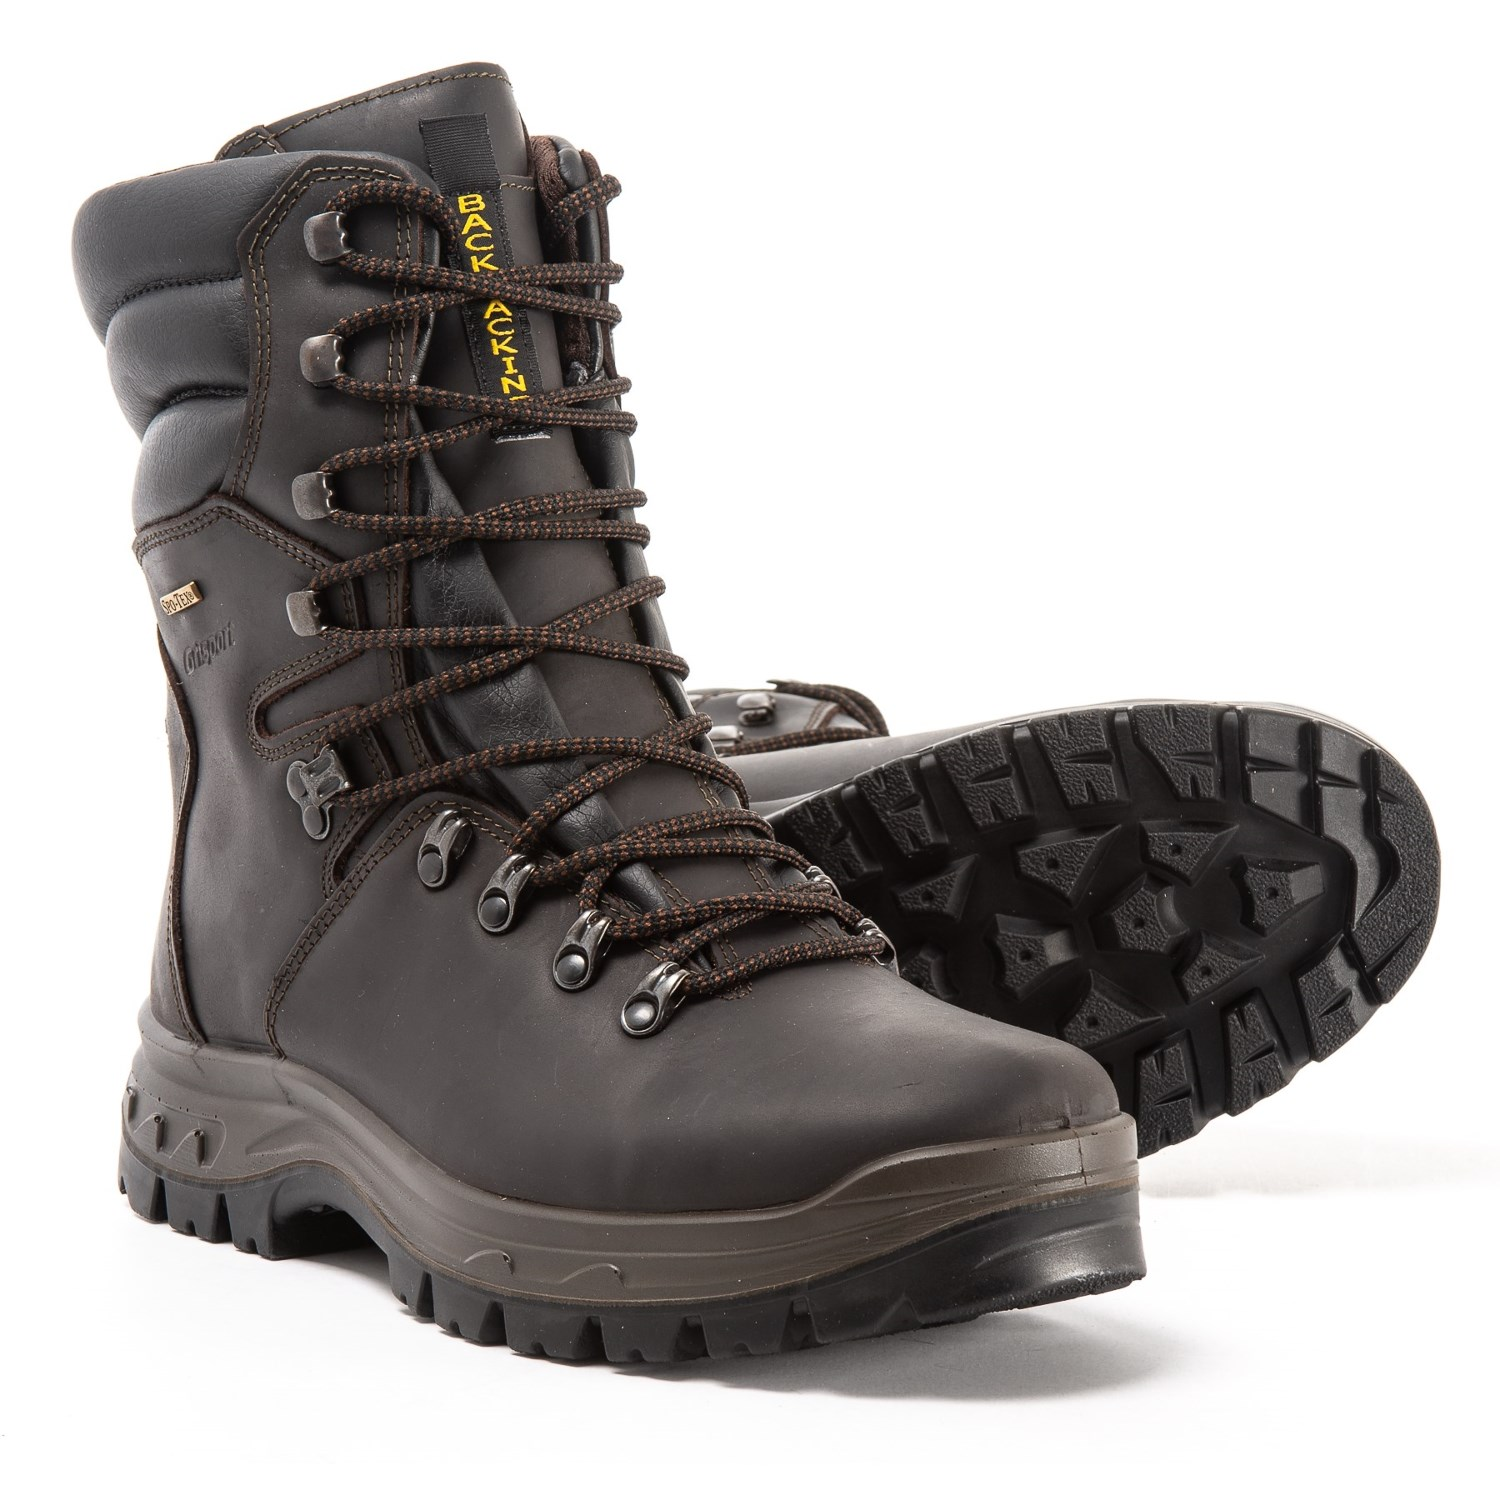 797ae678833 Grisport Made in Italy Alpine Hunting Boots - Waterproof (For Men)